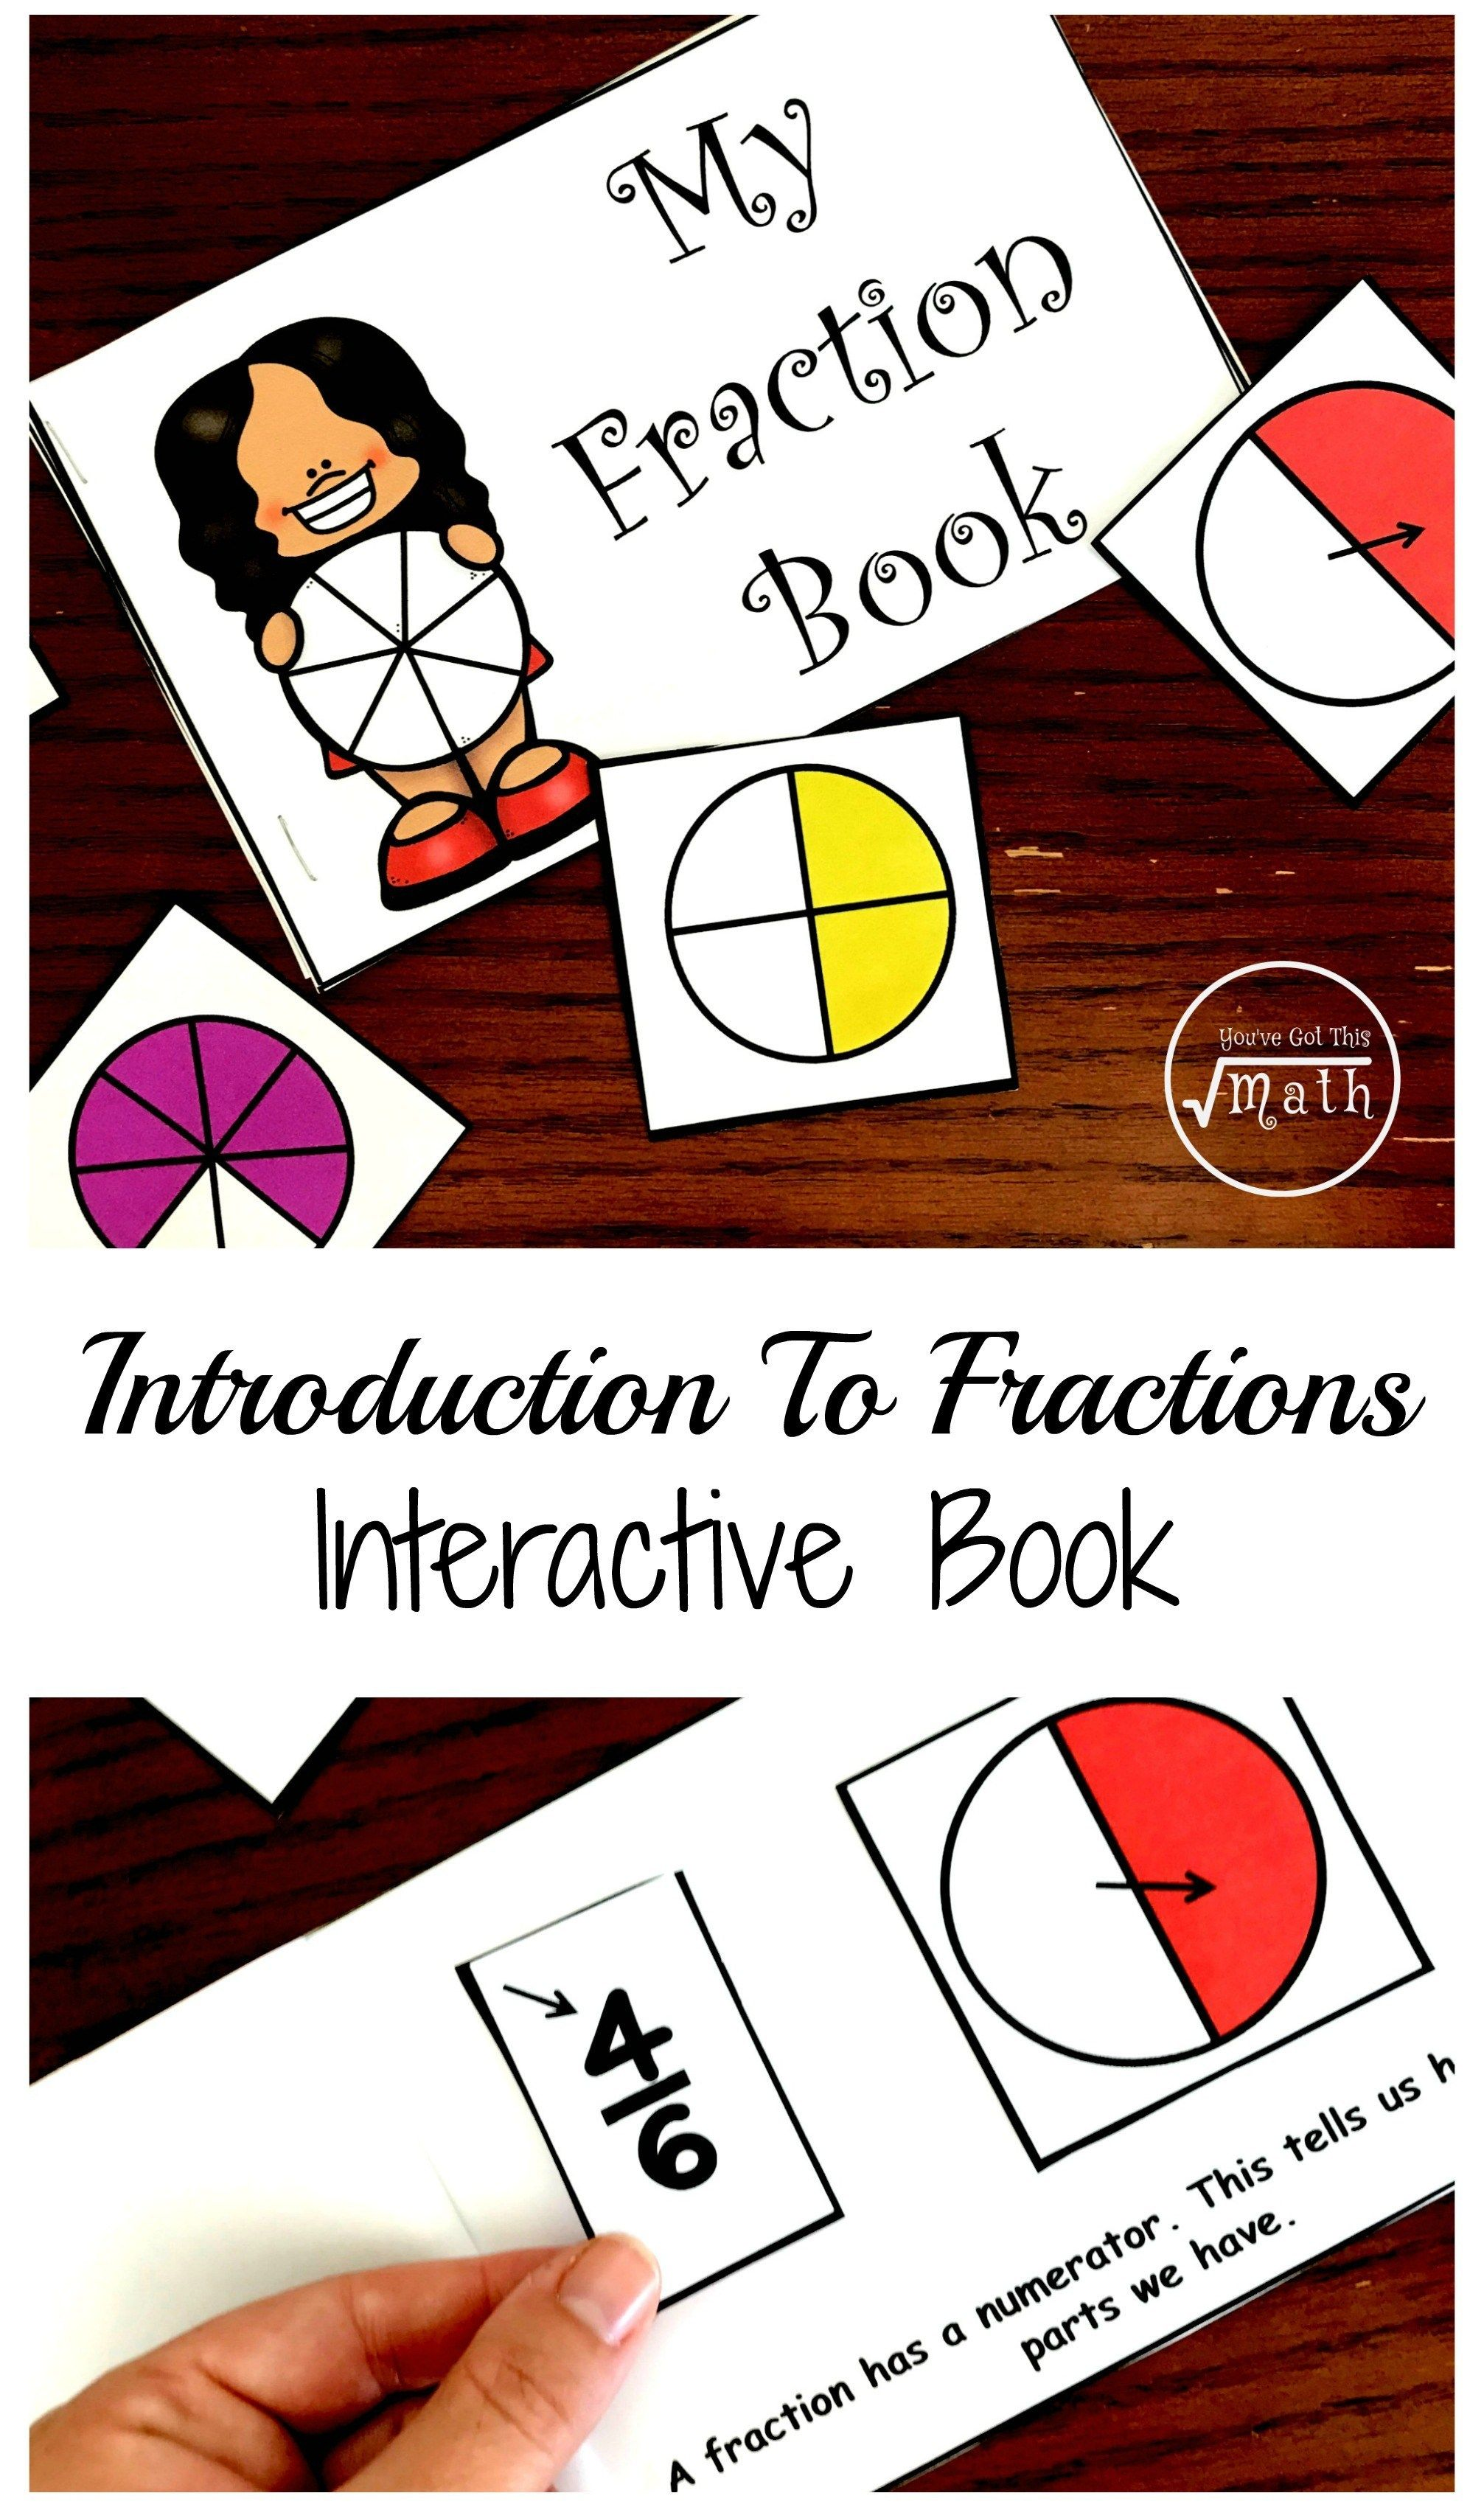 Free Fraction Book Printable to Introduce Fractions